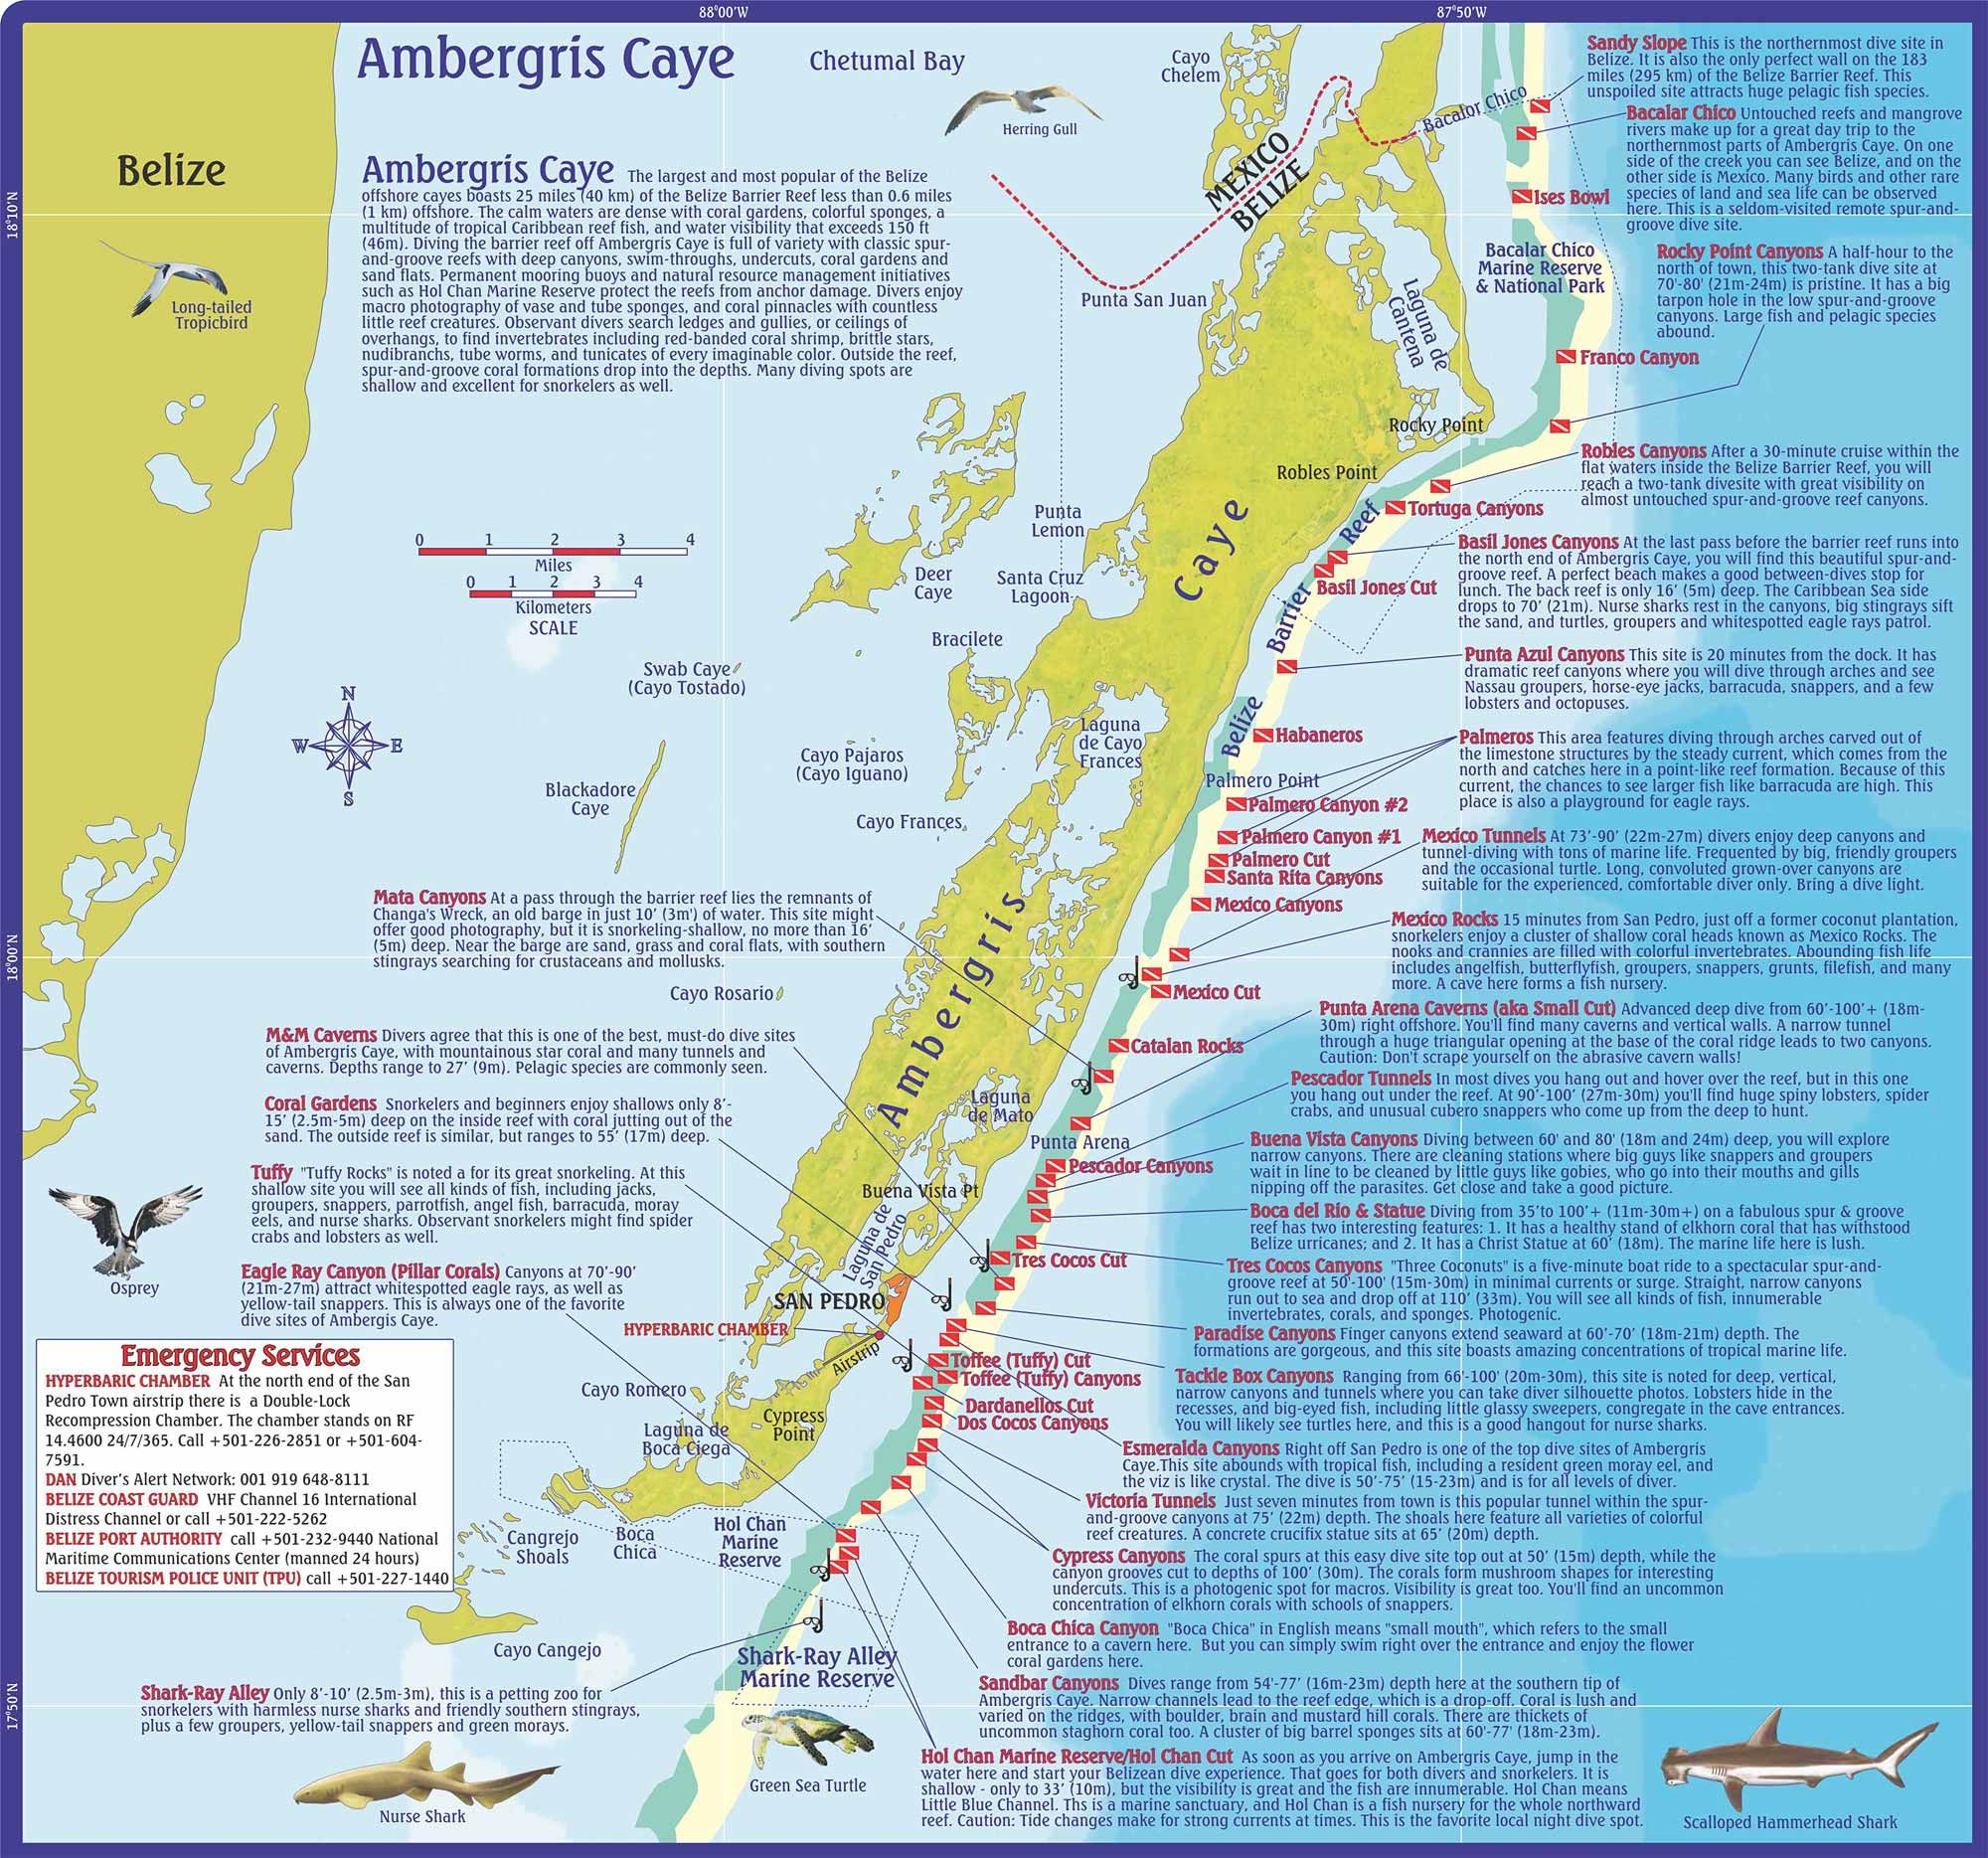 ambergris caye belize map Ambergris Caye Dive Maps Ambergris Caye San Pedro Caribbean And ambergris caye belize map